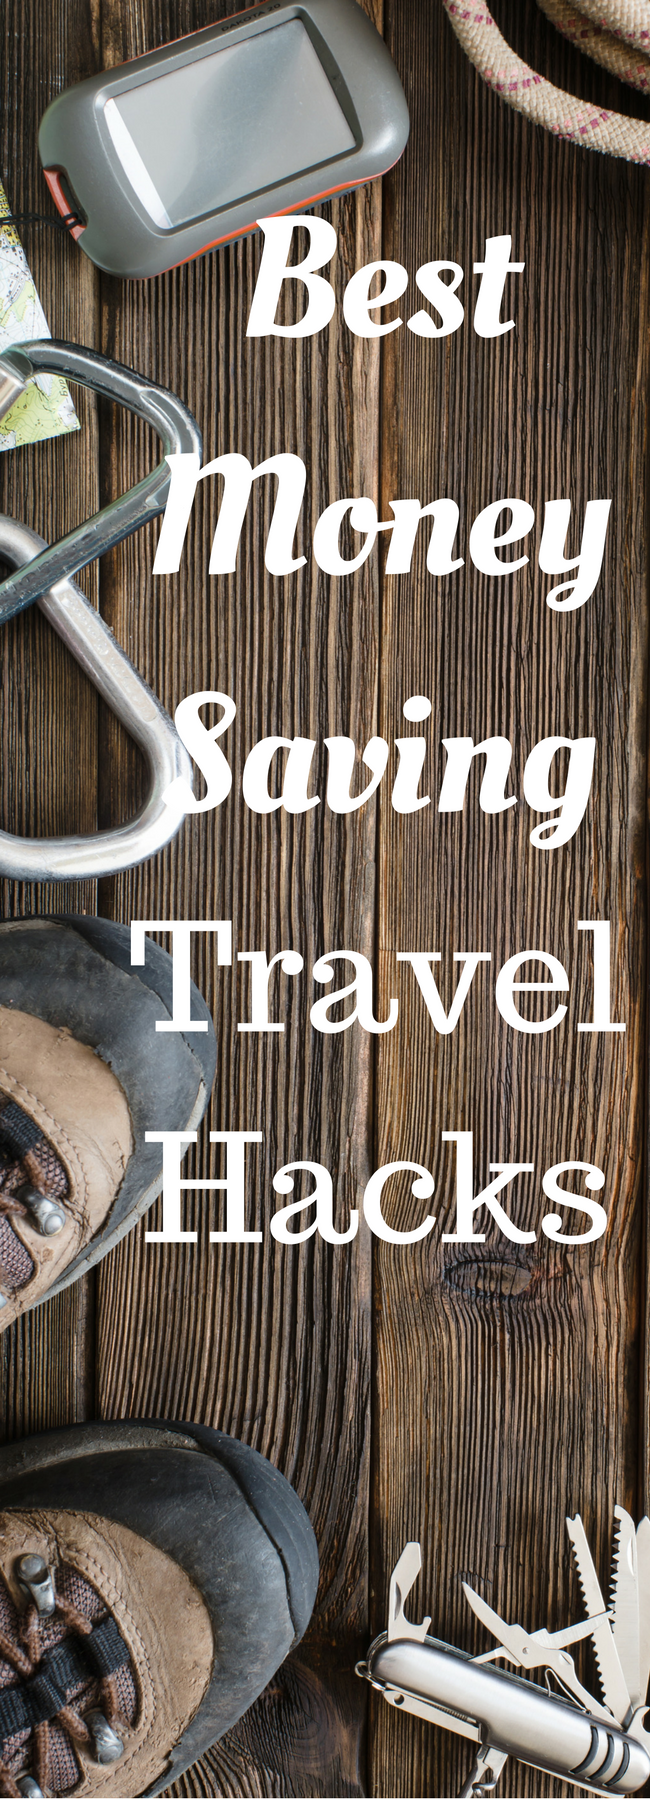 Cheap Travel / Save Money on Travel / Save Money on Hotels / Save Money on Flights / Travel / Travel the World / Travel Hacks